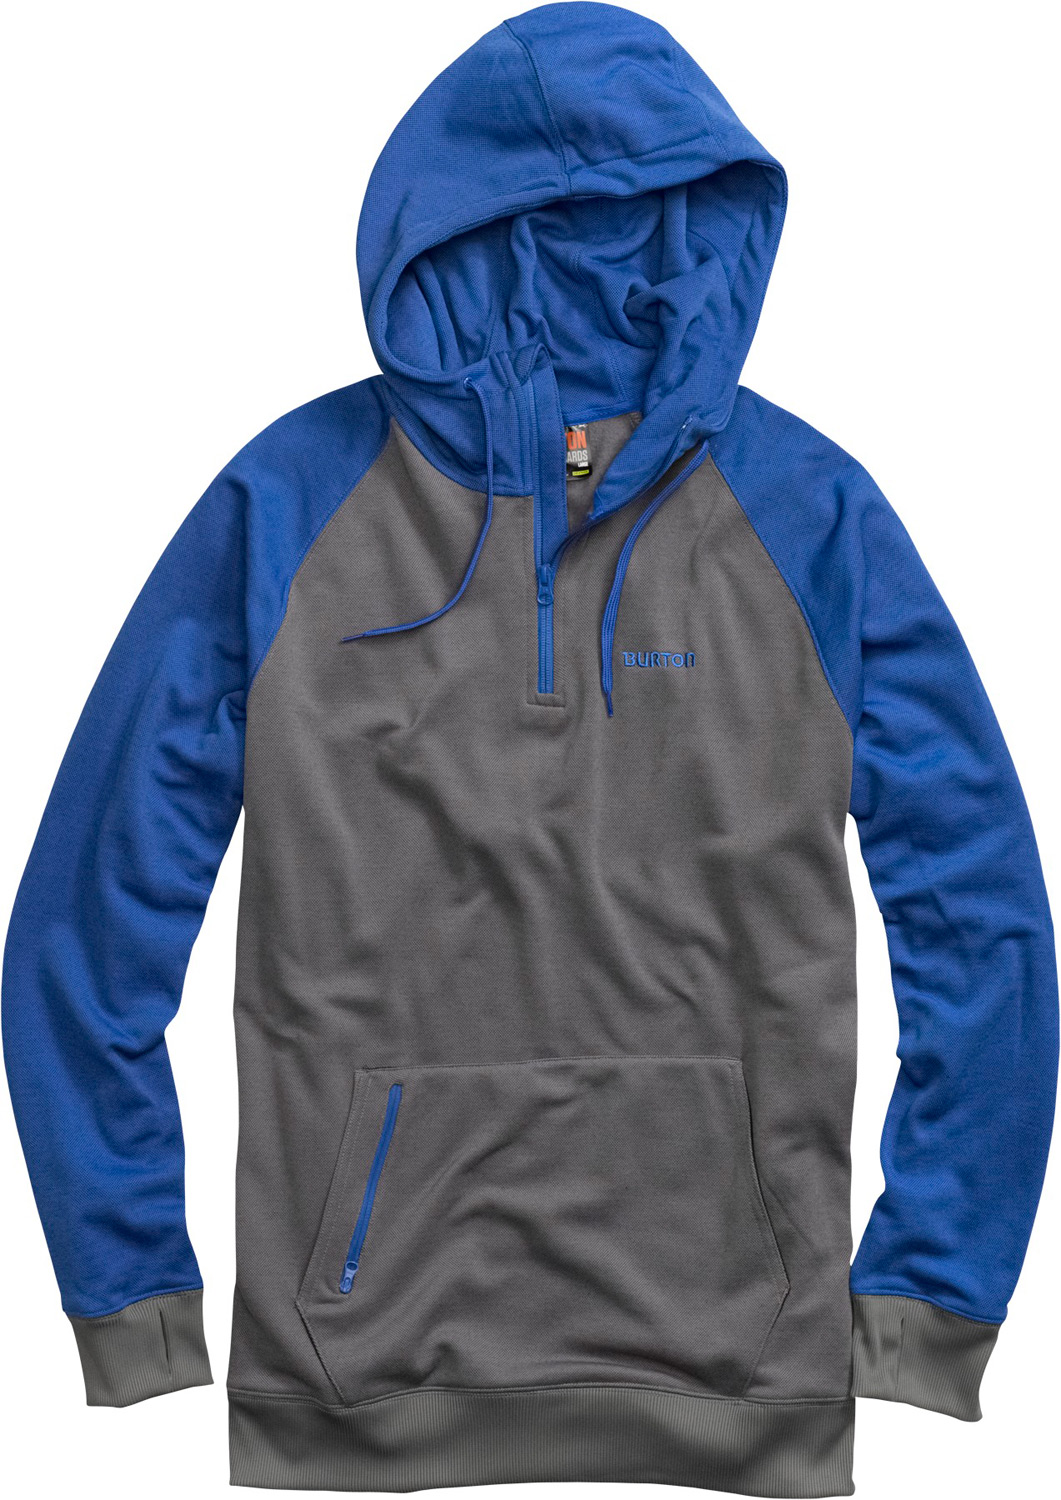 Snowboard Boldly go. Wind, snow, rain-this high-tech hoodie deflects it all. Key Features of the Burton Totem Hoodie: DRYRIDE Thermex Bonded Fleece Body Hood with Drawstring Closure Kangaroo Handwarmer Pocket Ribbed Cuffs and Hem Hidden Side Seam Stash Pocket with Headphone Cable Port - $79.95